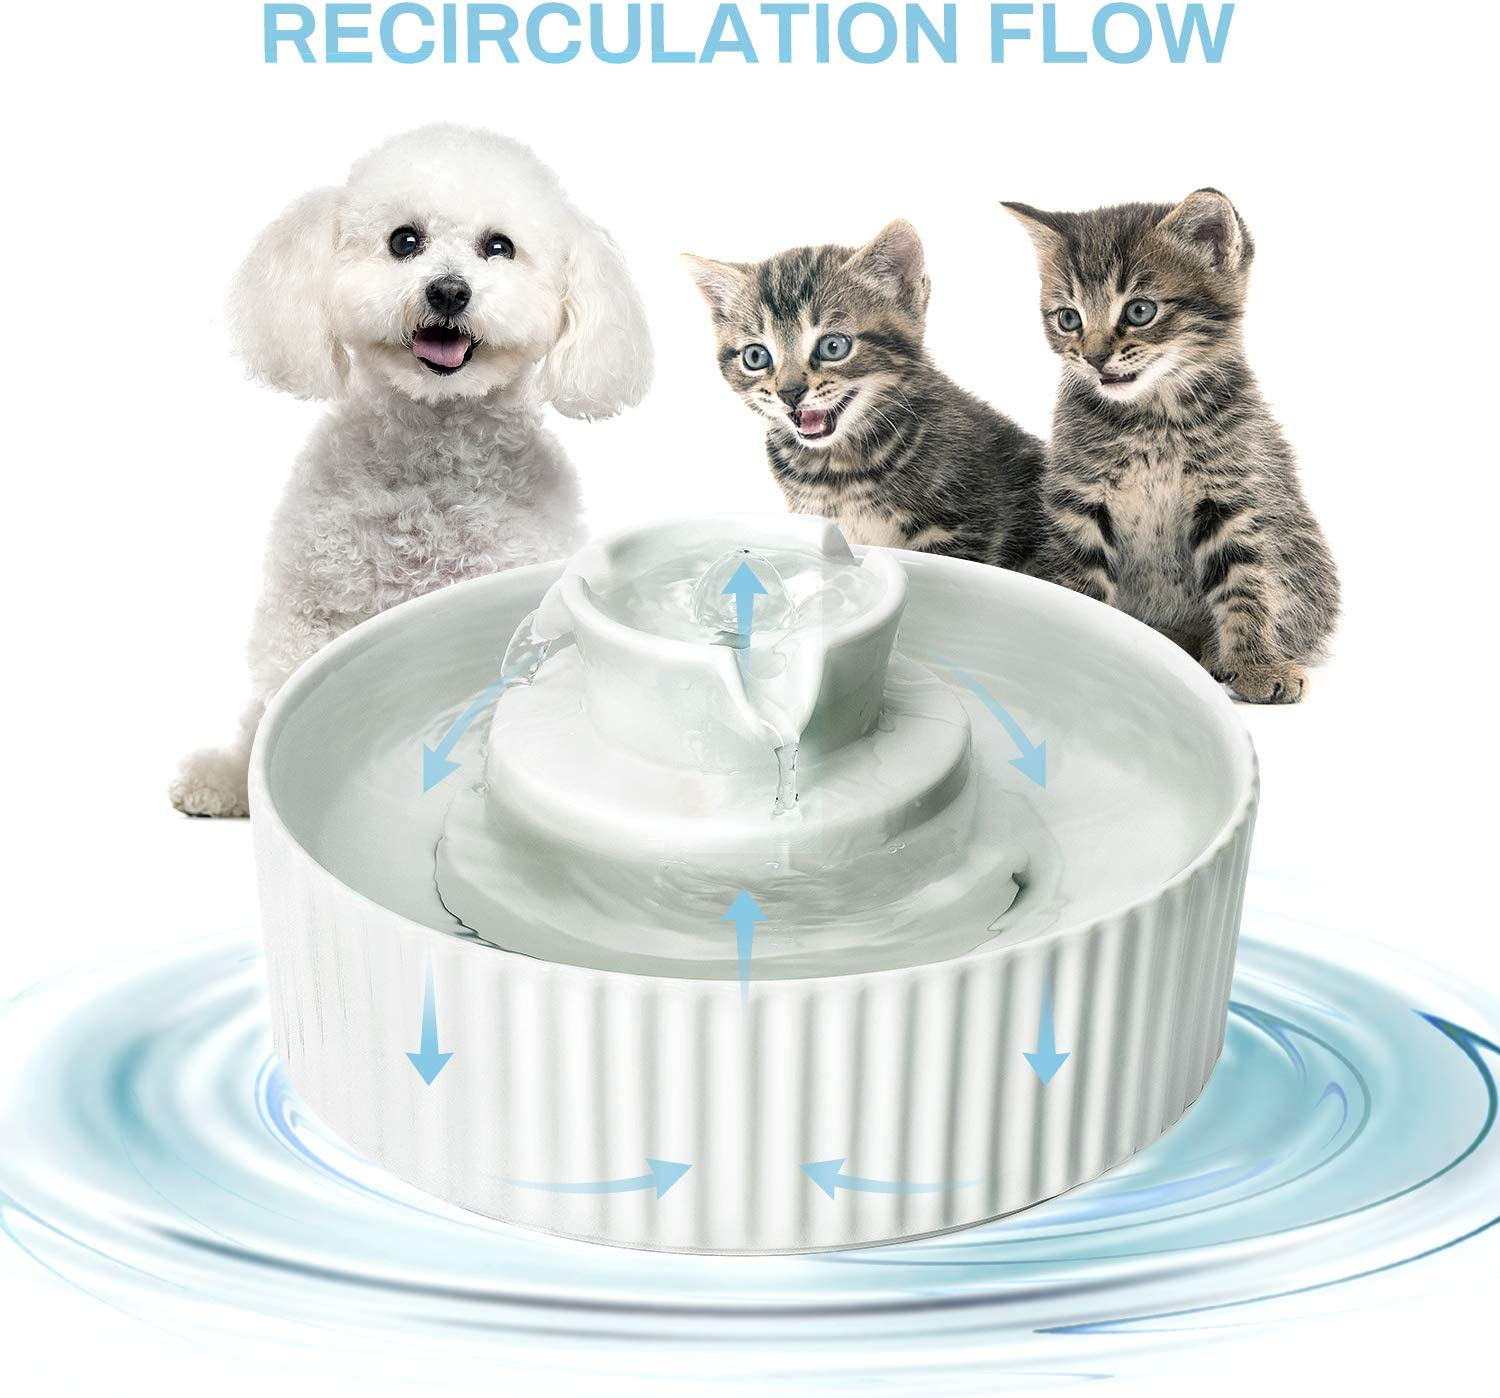 2.1L Cat Water Bowl Ceramic NautyPaws Cat Water Dispenser Ceramic Drinking Fountains Bowl for Cats and Dogs with Replacement Filters and Foam